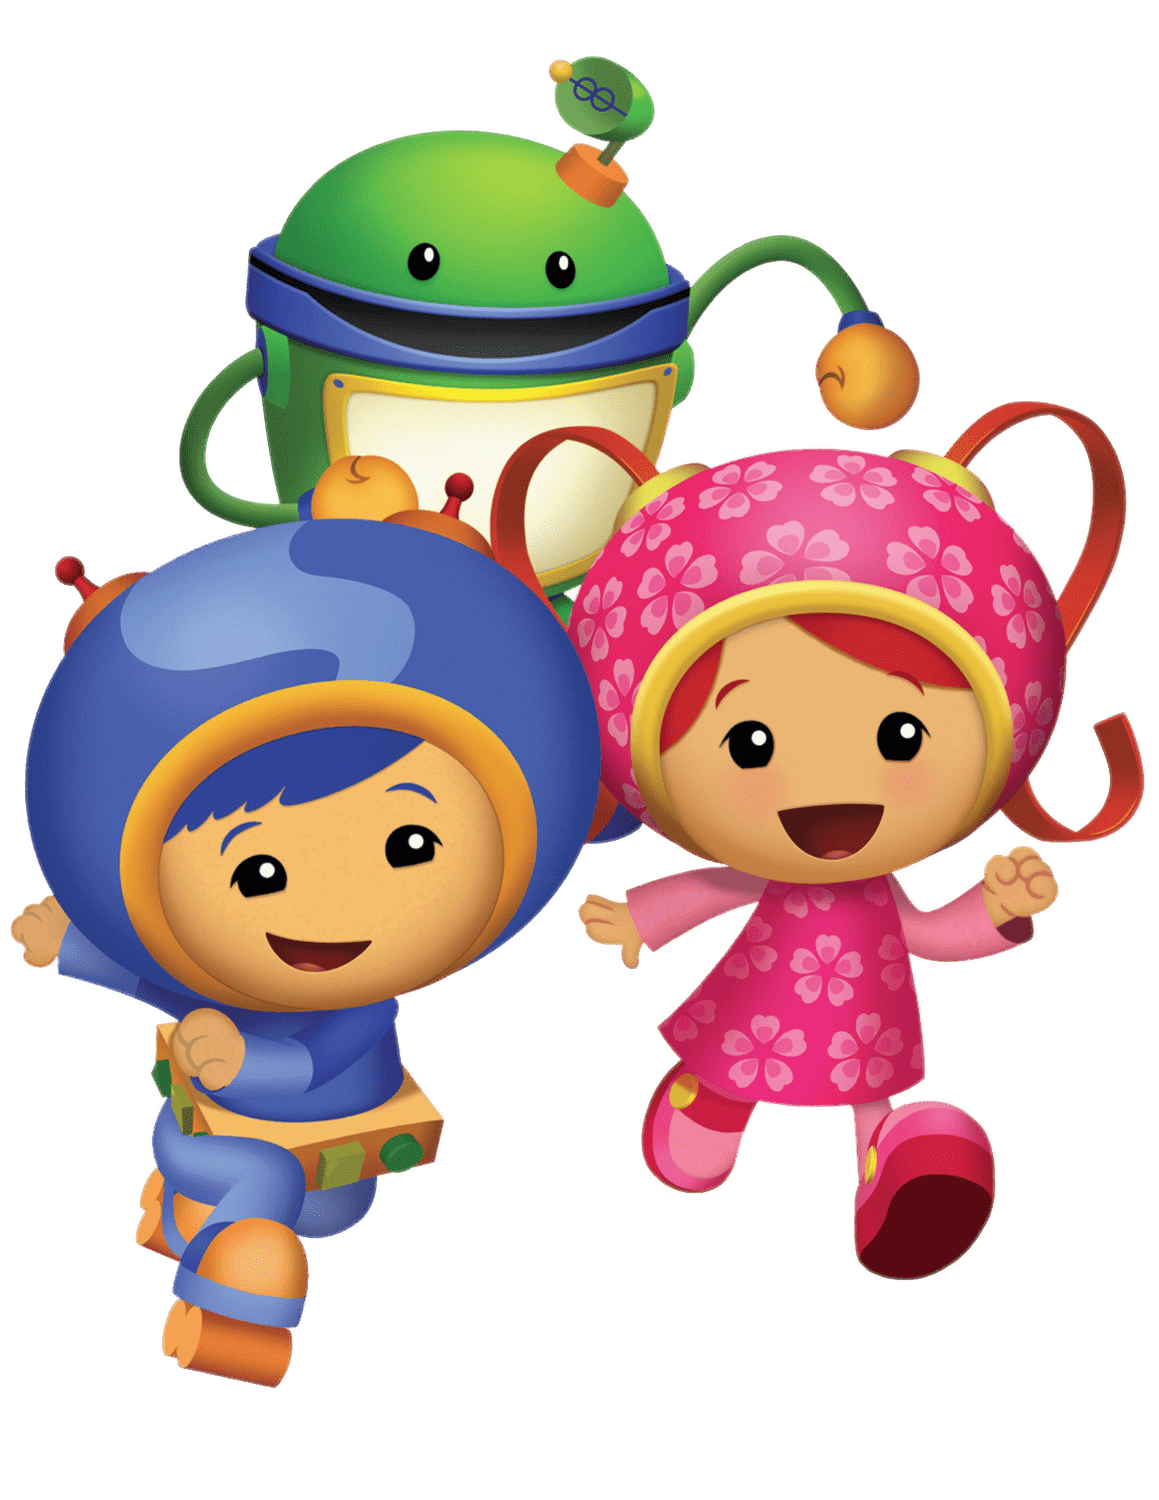 Creative clipart team. Umizoomi transparent png stickpng